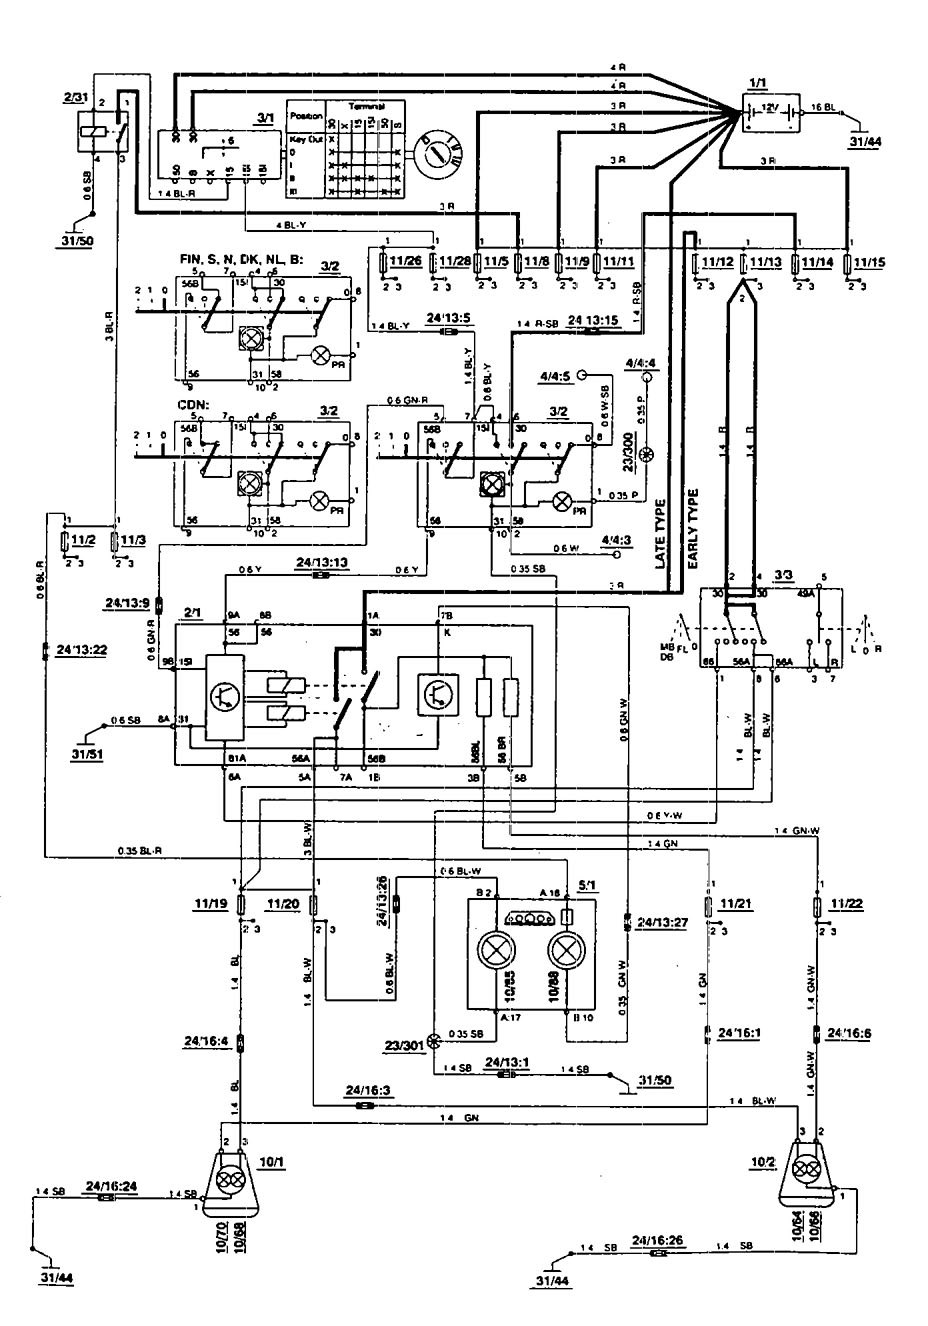 1994 volvo 850 wiring diagram auto electrical wiring diagram Ford F-150 Wiring Diagram related with 1994 volvo 850 wiring diagram